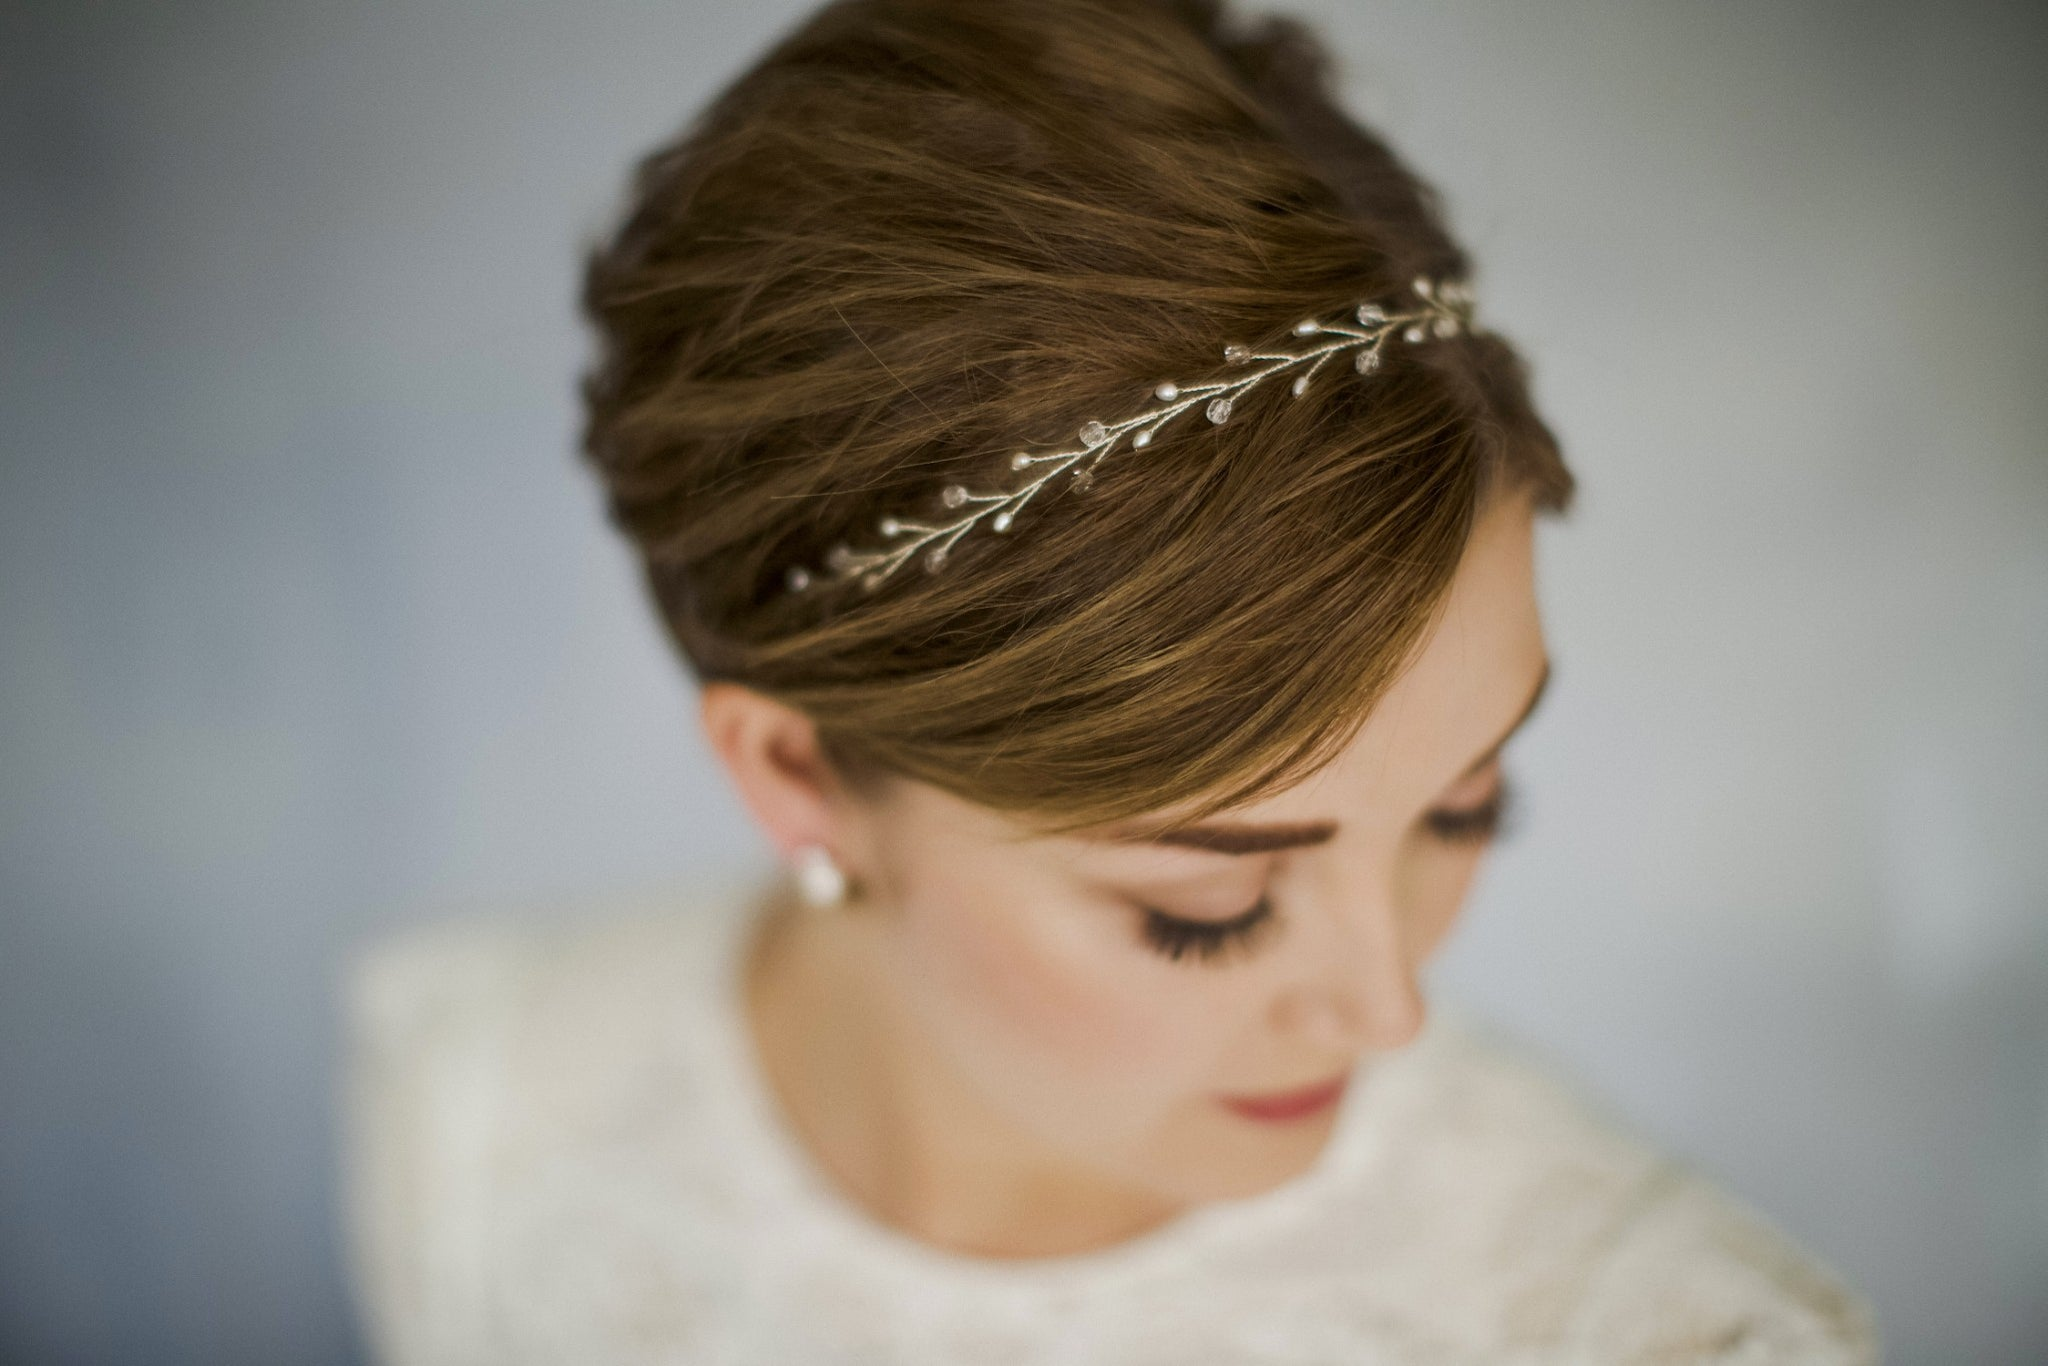 Simple crystal and pearl silver wedding headband with ribbon ties